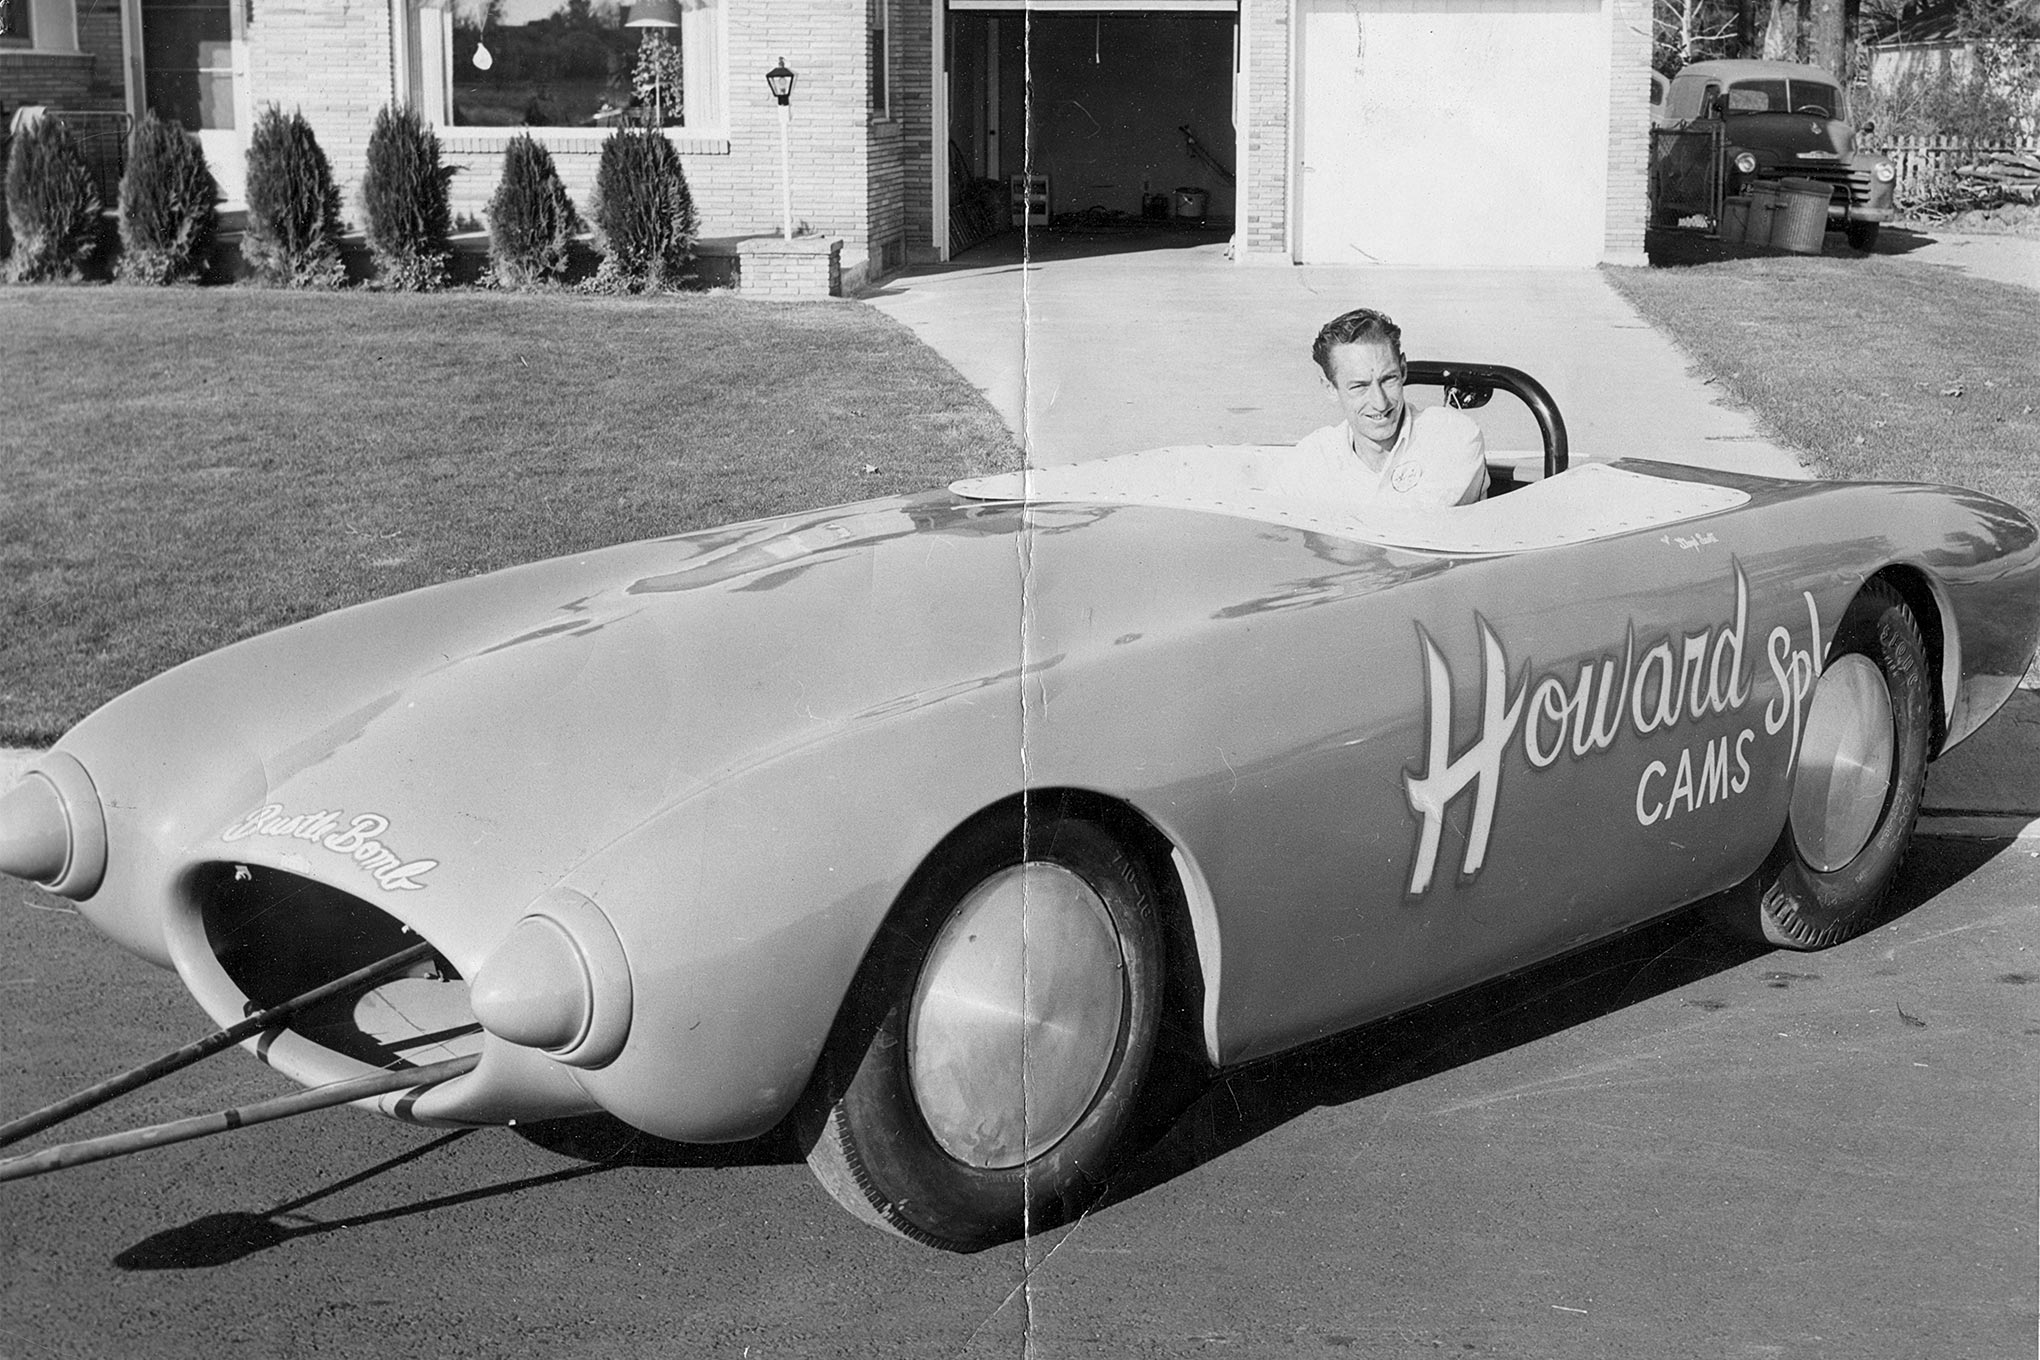 Scotty painted and remounted the Meteor SR1 body when he returned to Spokane. This was in preparation for the Spokane Auto Show in November 1958. Presumably, the car never ran with the body. At the very least, the Oldsmobile engines would've sprouted through the bodywork. The Chevrolets he tried earlier didn't; they're much smaller.